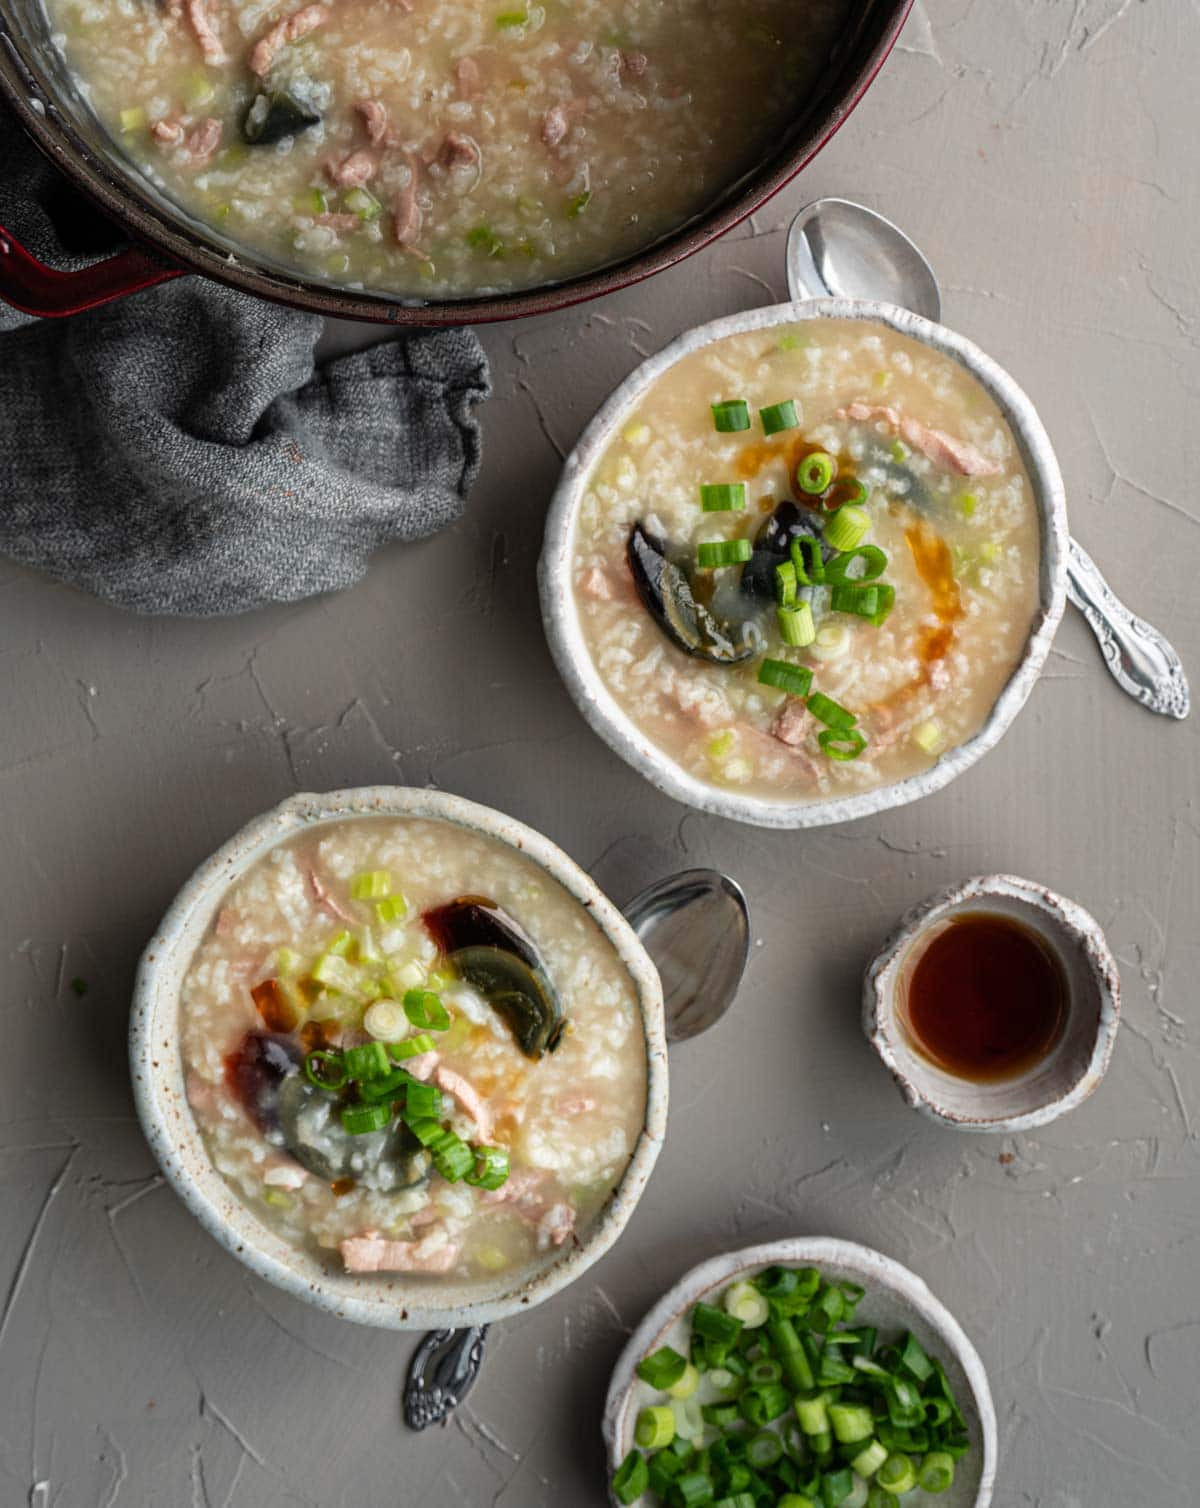 a pot and two bowls of century egg congee, a small bowl of sesame oil, and a plate of chopped scallion.